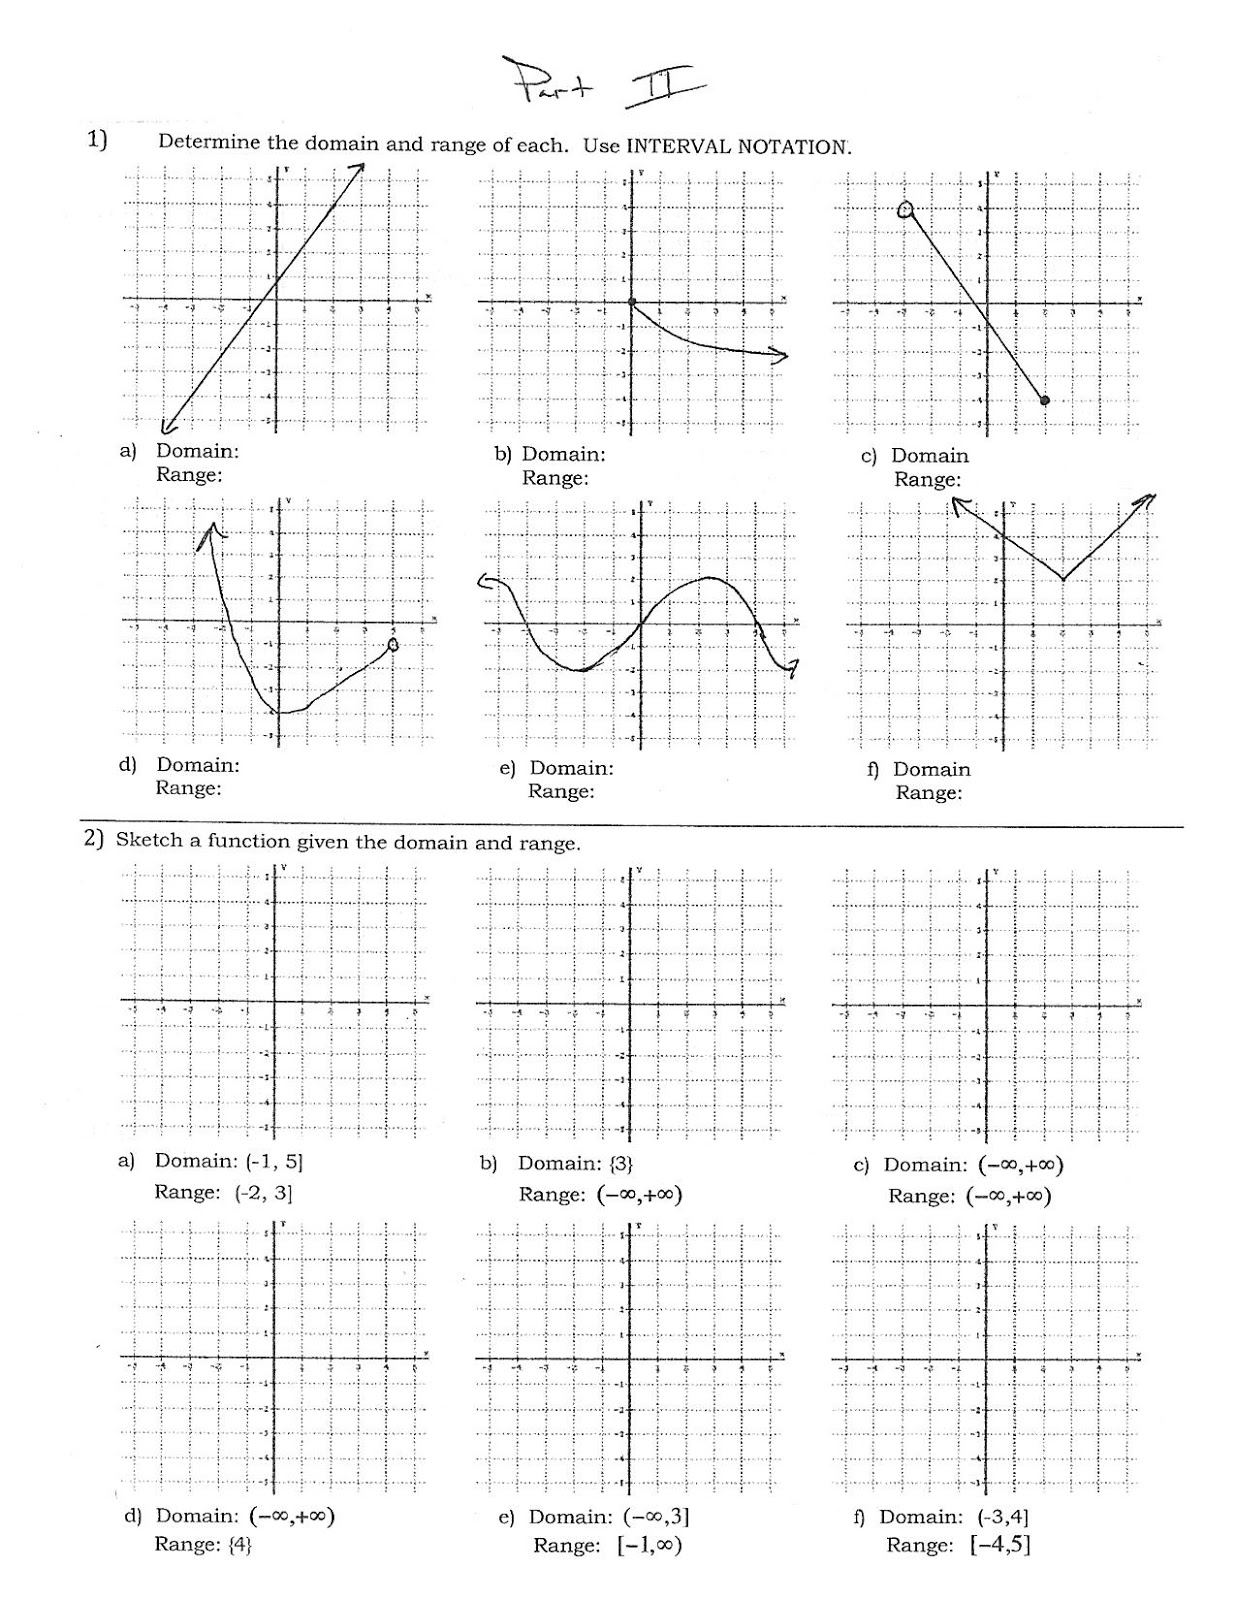 Worksheet Domain And Range Worksheets With Answers domain and range worksheets fireyourmentor free printable pre calculus worksheet does taking adderall help you